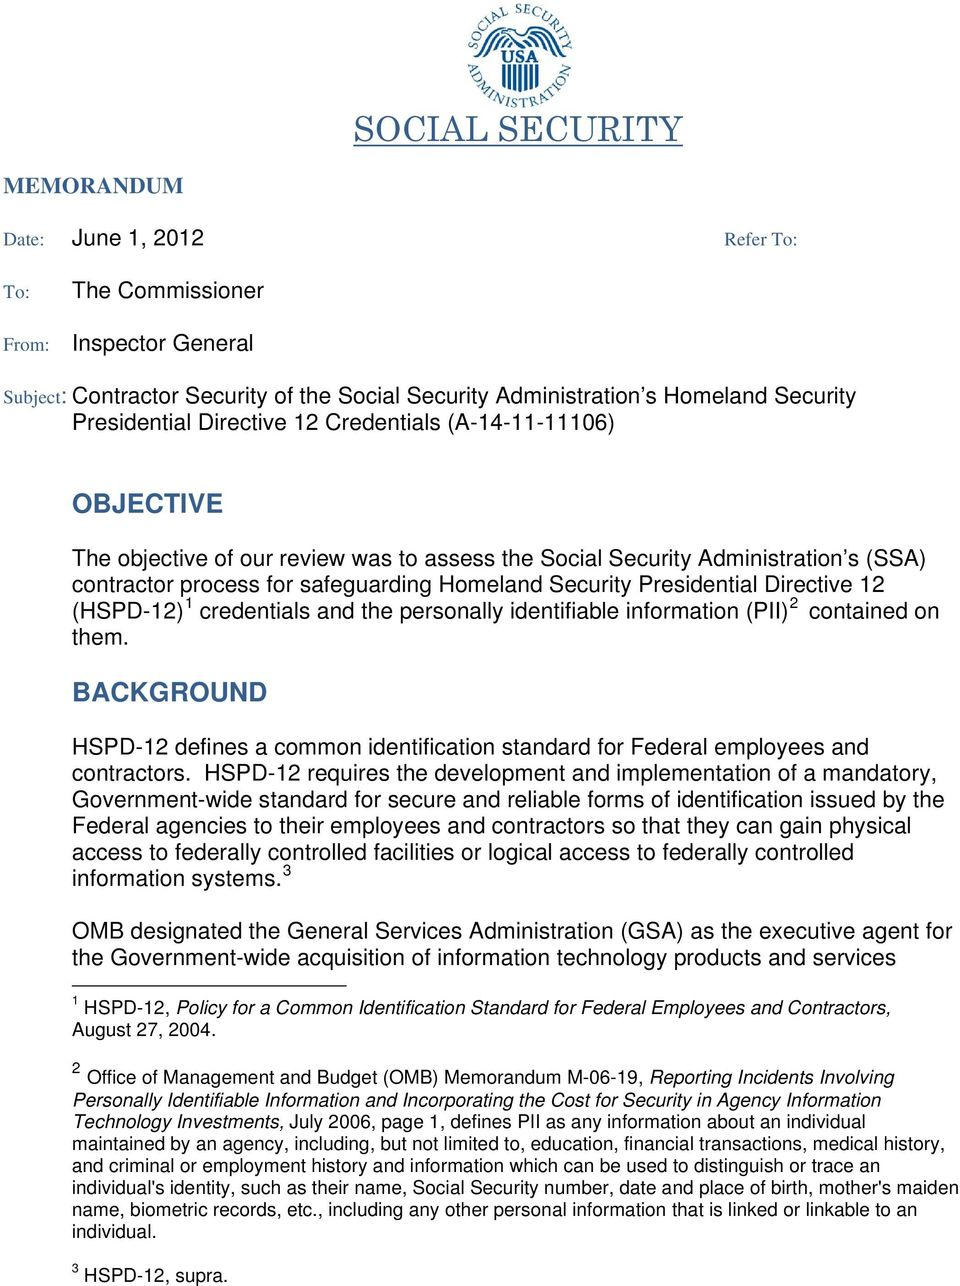 Security Presidential Directive 12 (HSPD-12) 1 credentials and the personally identifiable information (PII) 2 contained on them.